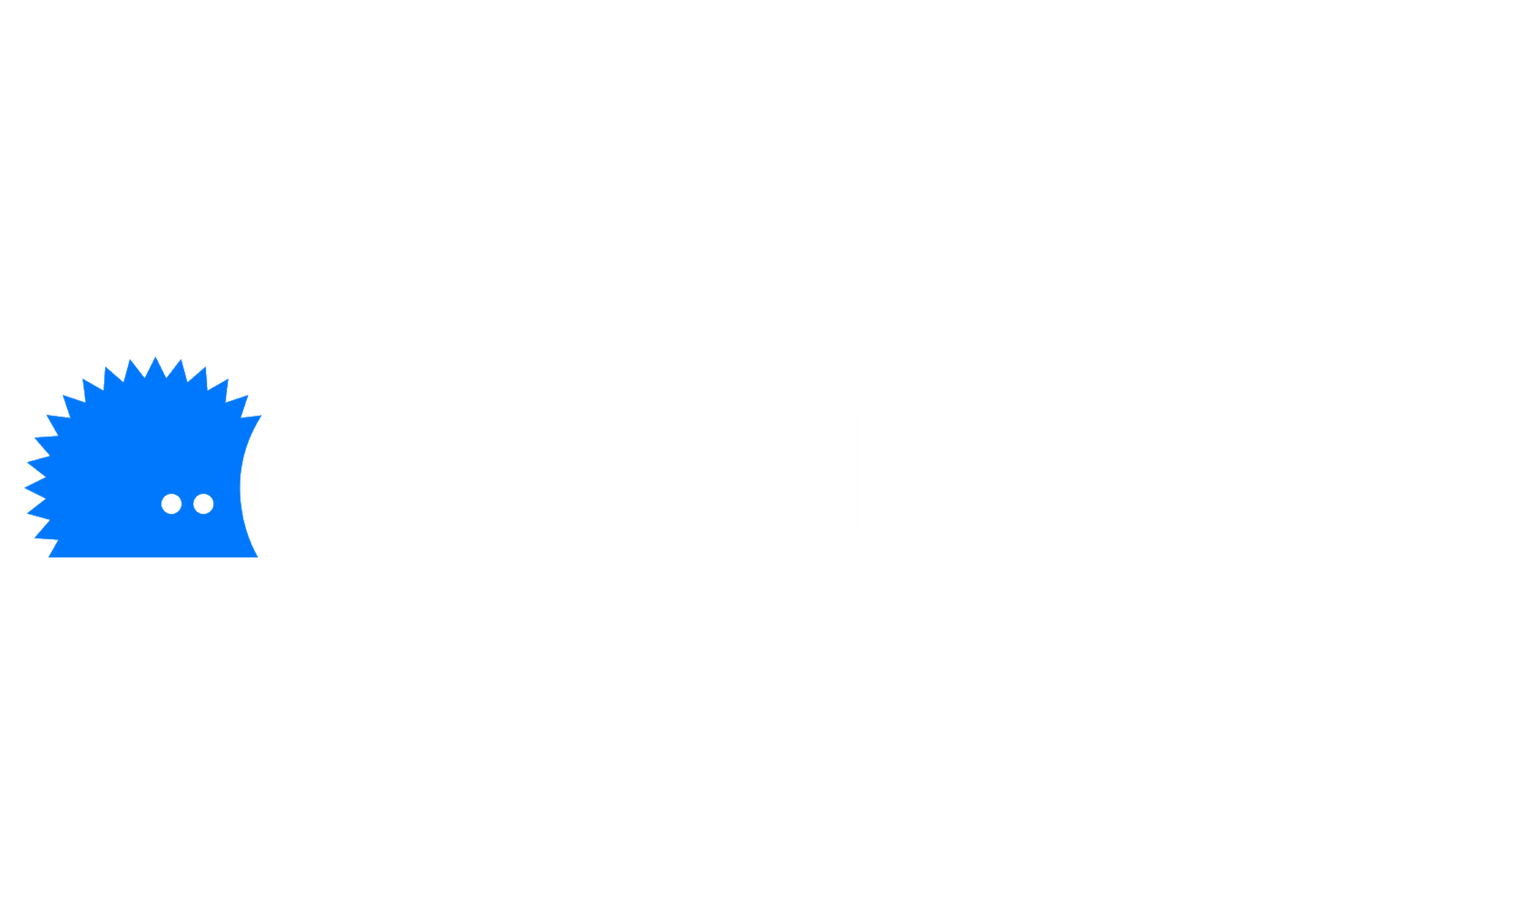 hedgehog lab